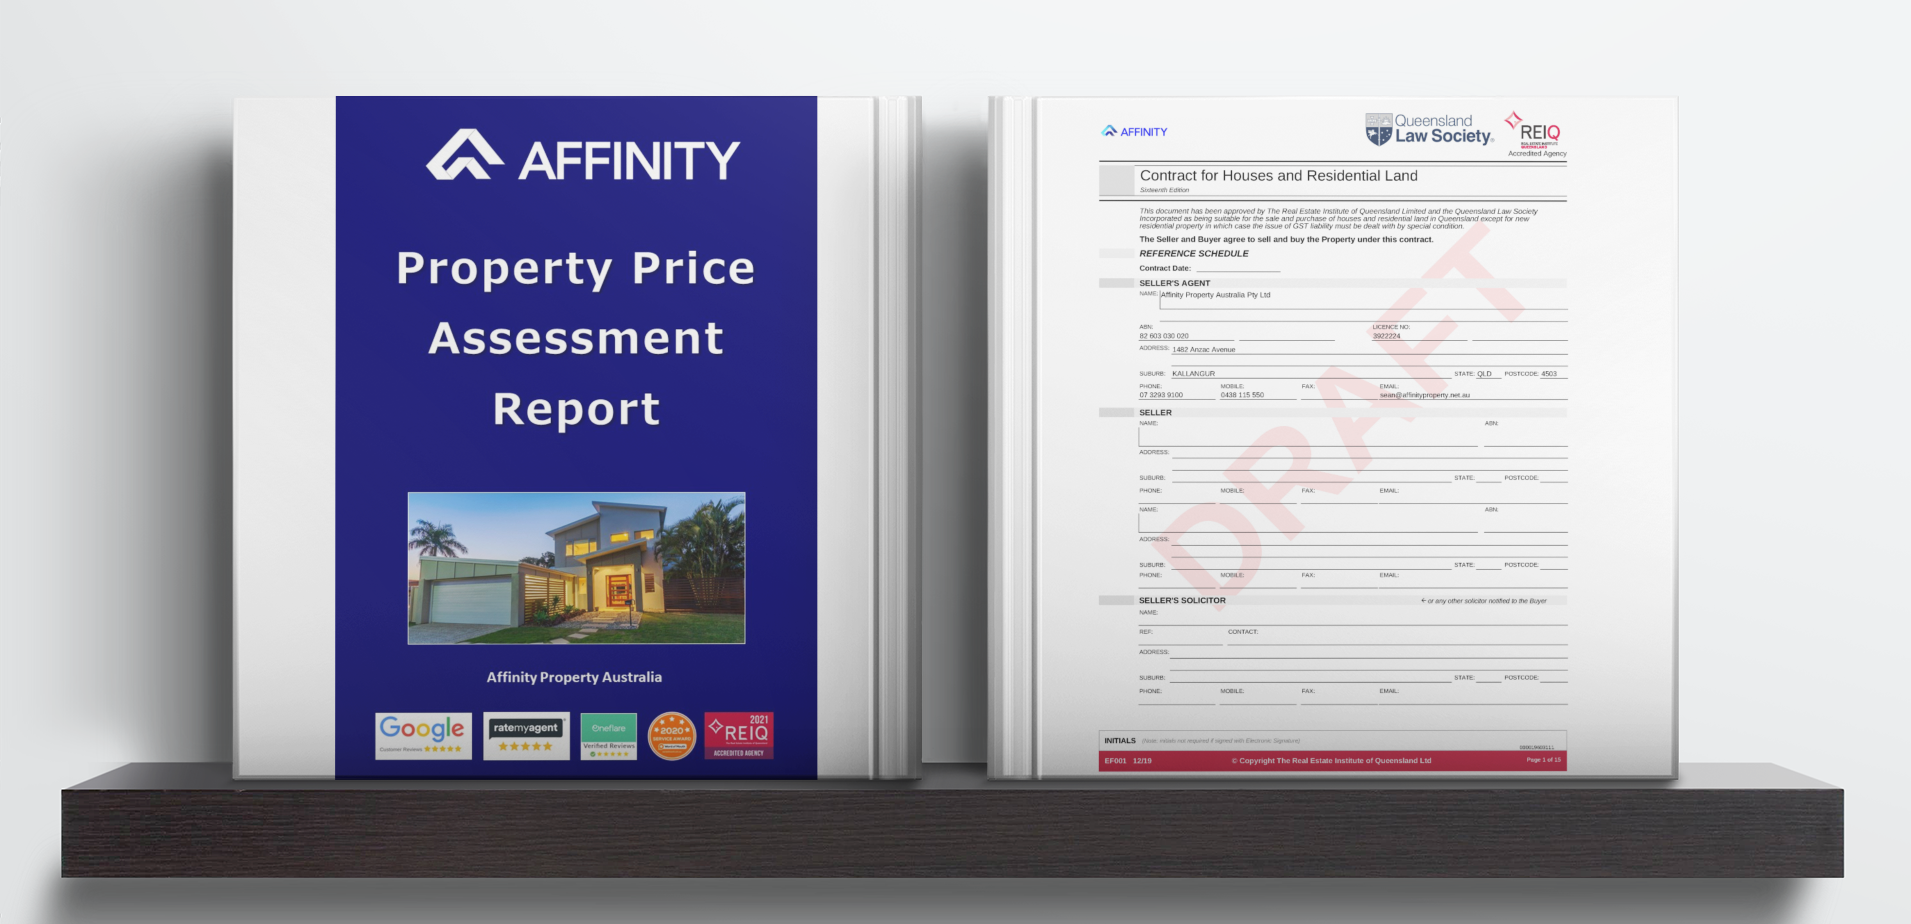 Property price assessment report and REIQ contract - How to Prepare a Winning Contract Offer